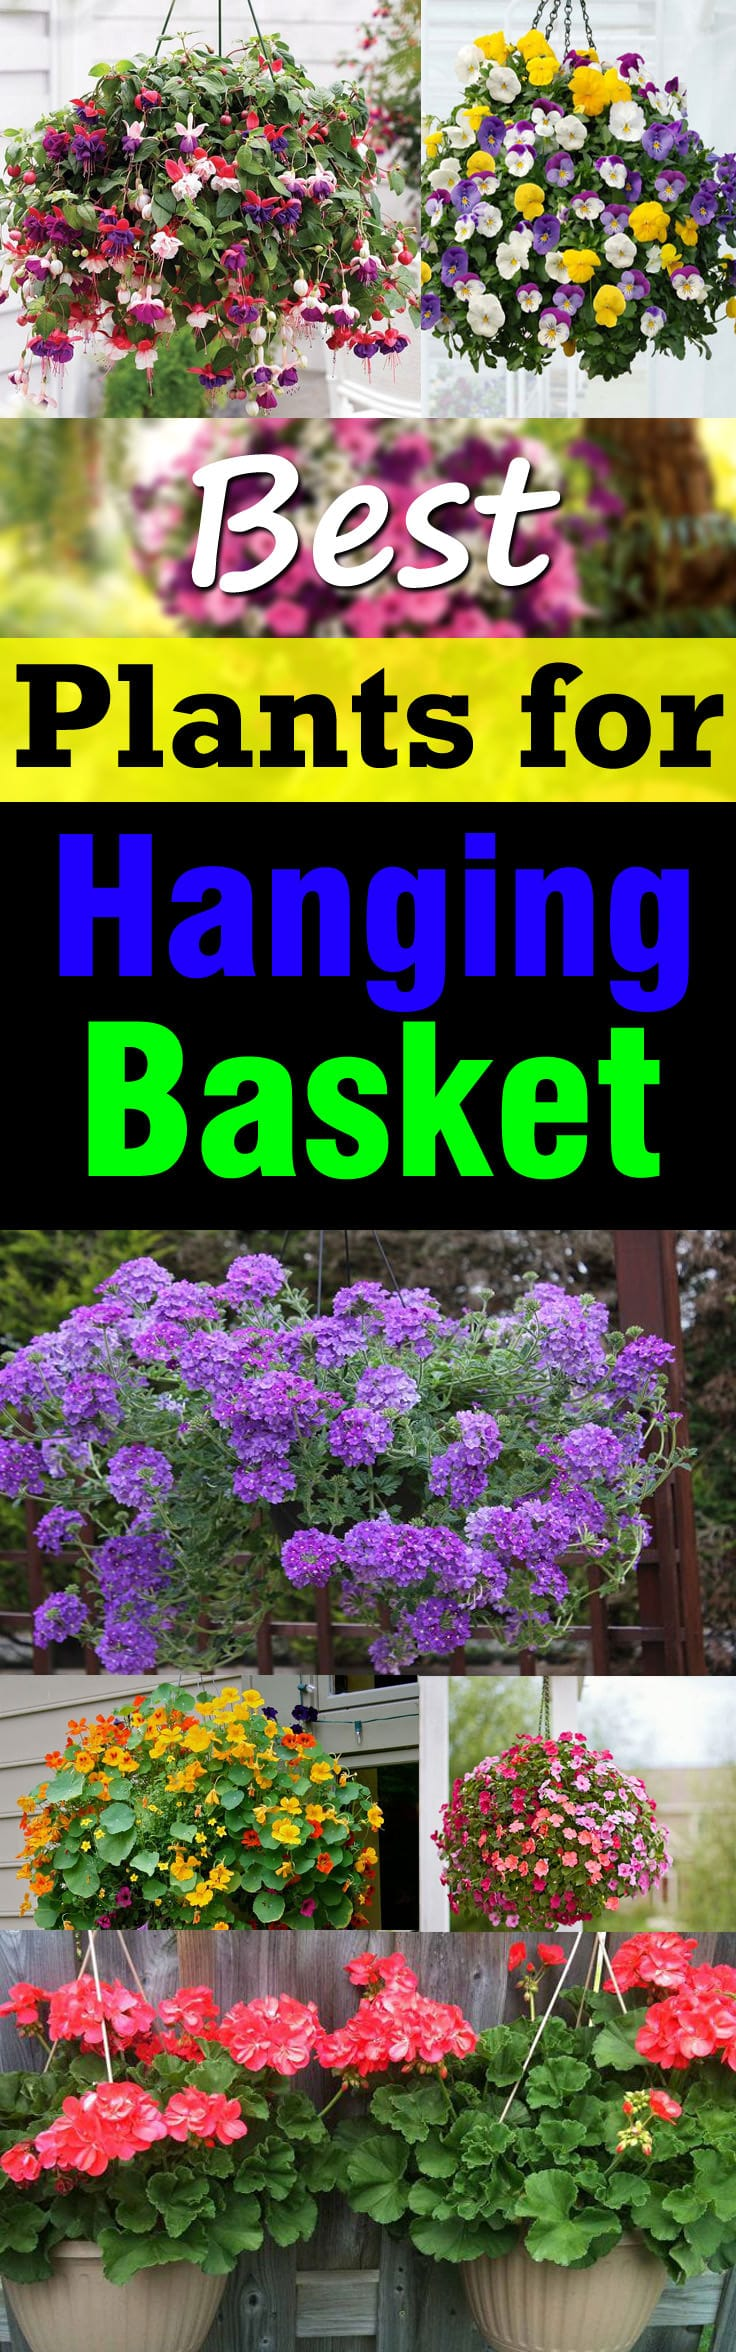 Learn About The Best Plants For Hanging Baskets Filled With Colorful Flowers And